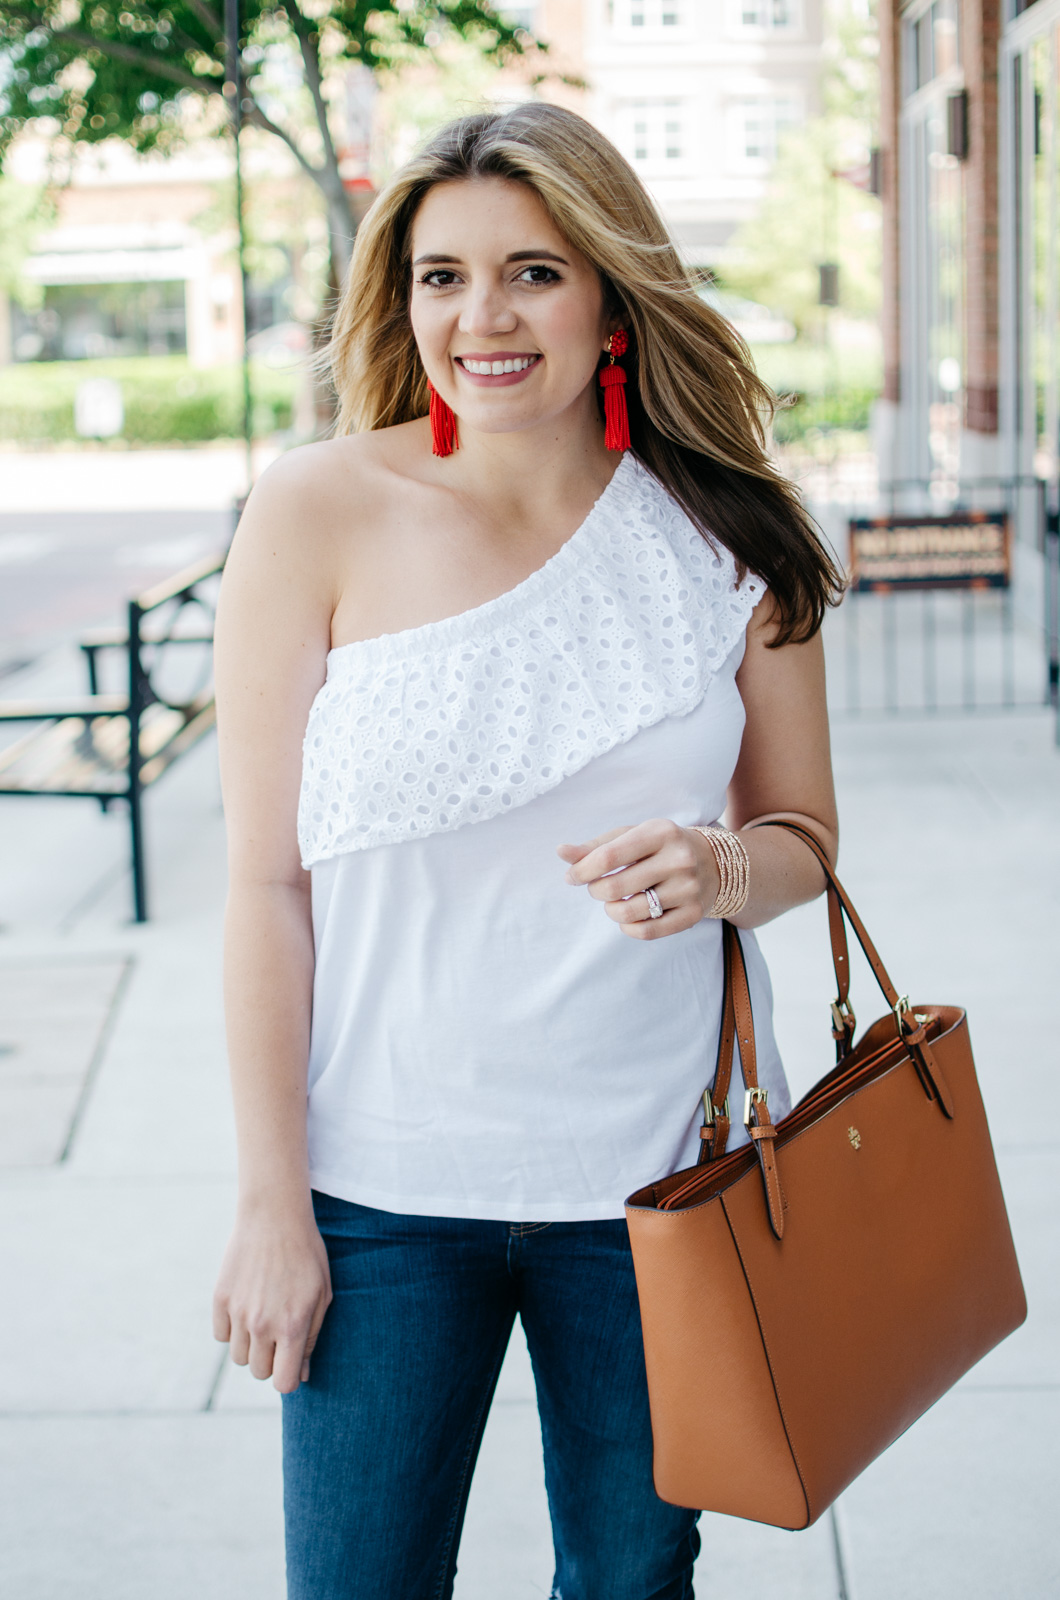 first trimester outfit ideas - one shoulder top | For more maternity outfits, head to bylaurenm.com!